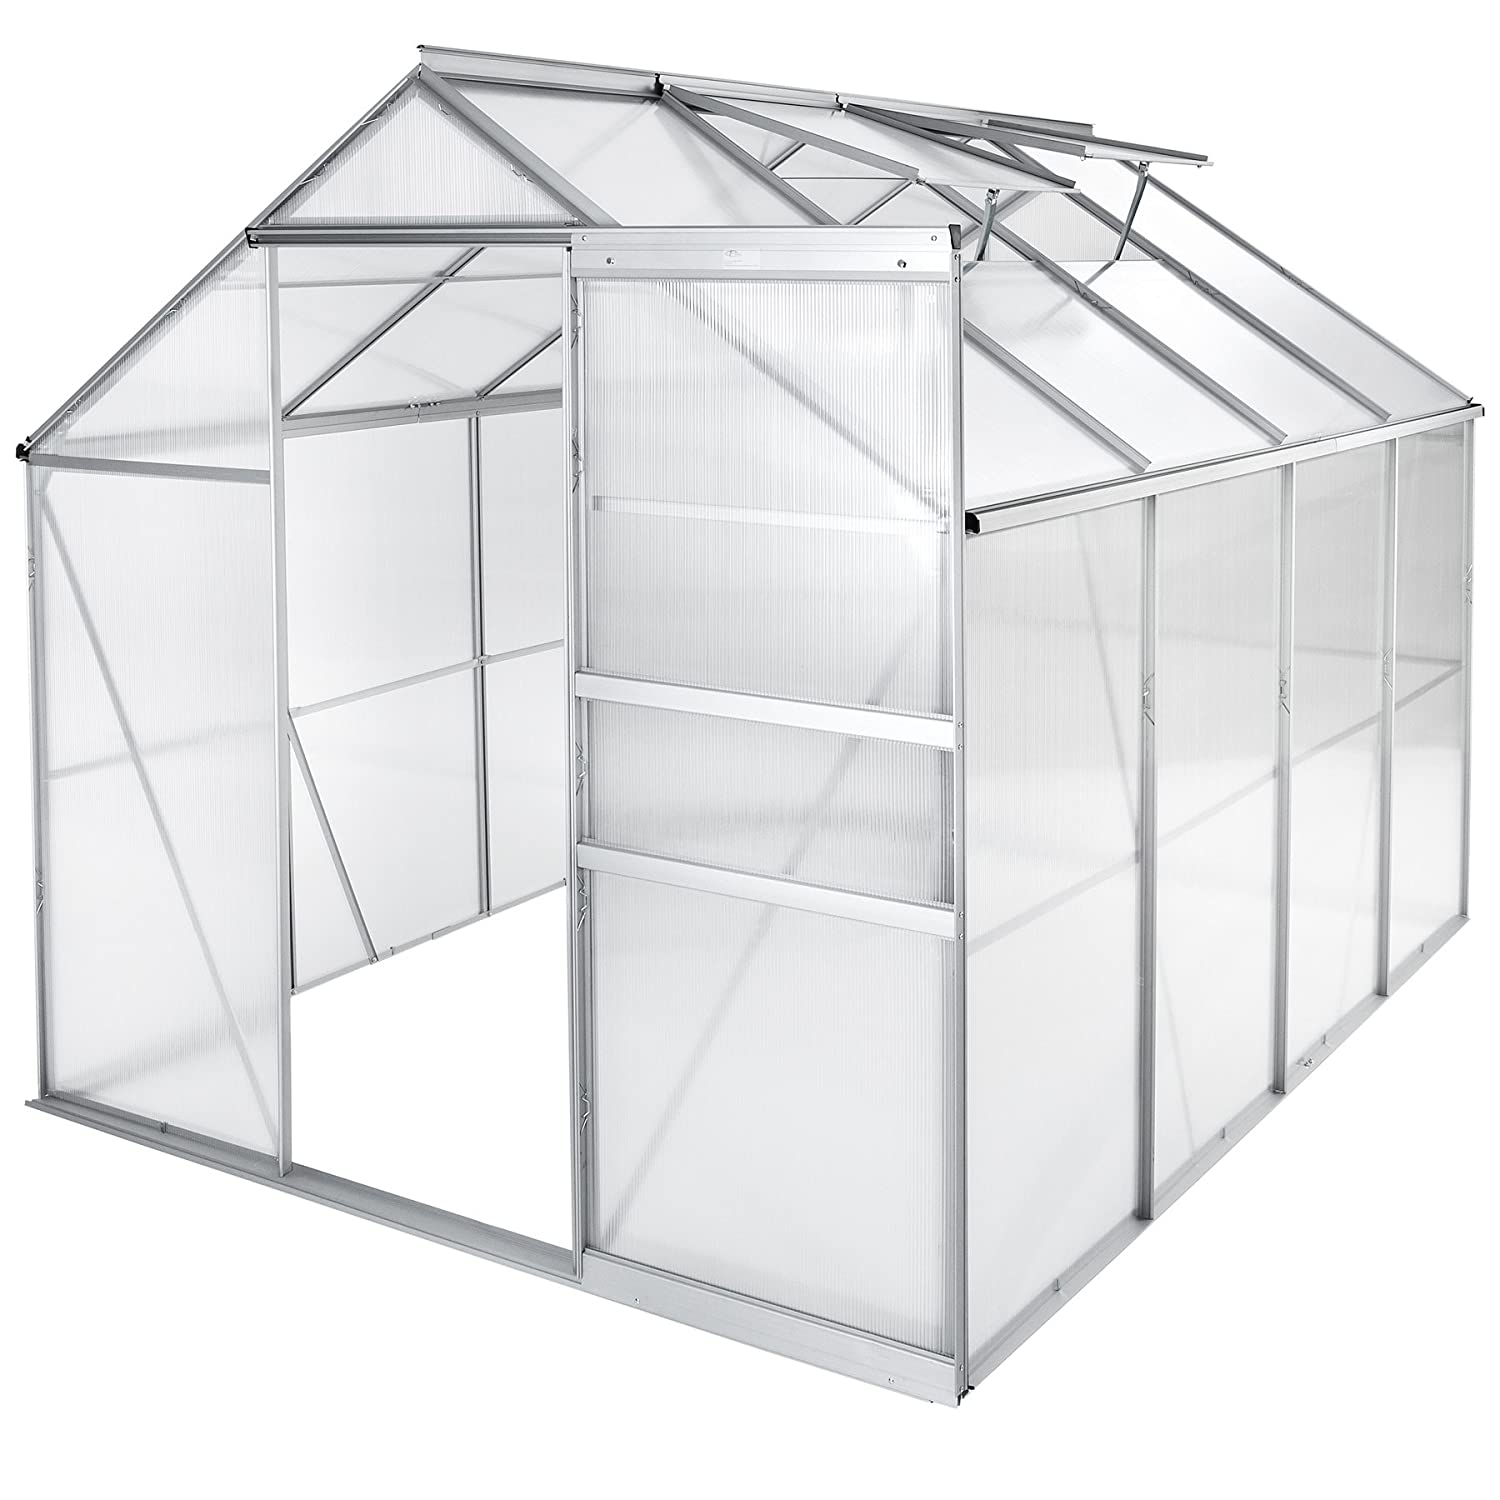 250x185x195cm   no. 402476 TecTake Greenhouse Polycarbonate Aluminium Growhouse with Window and Sliding Door Different Models (250x185x195cm   no. 402476)